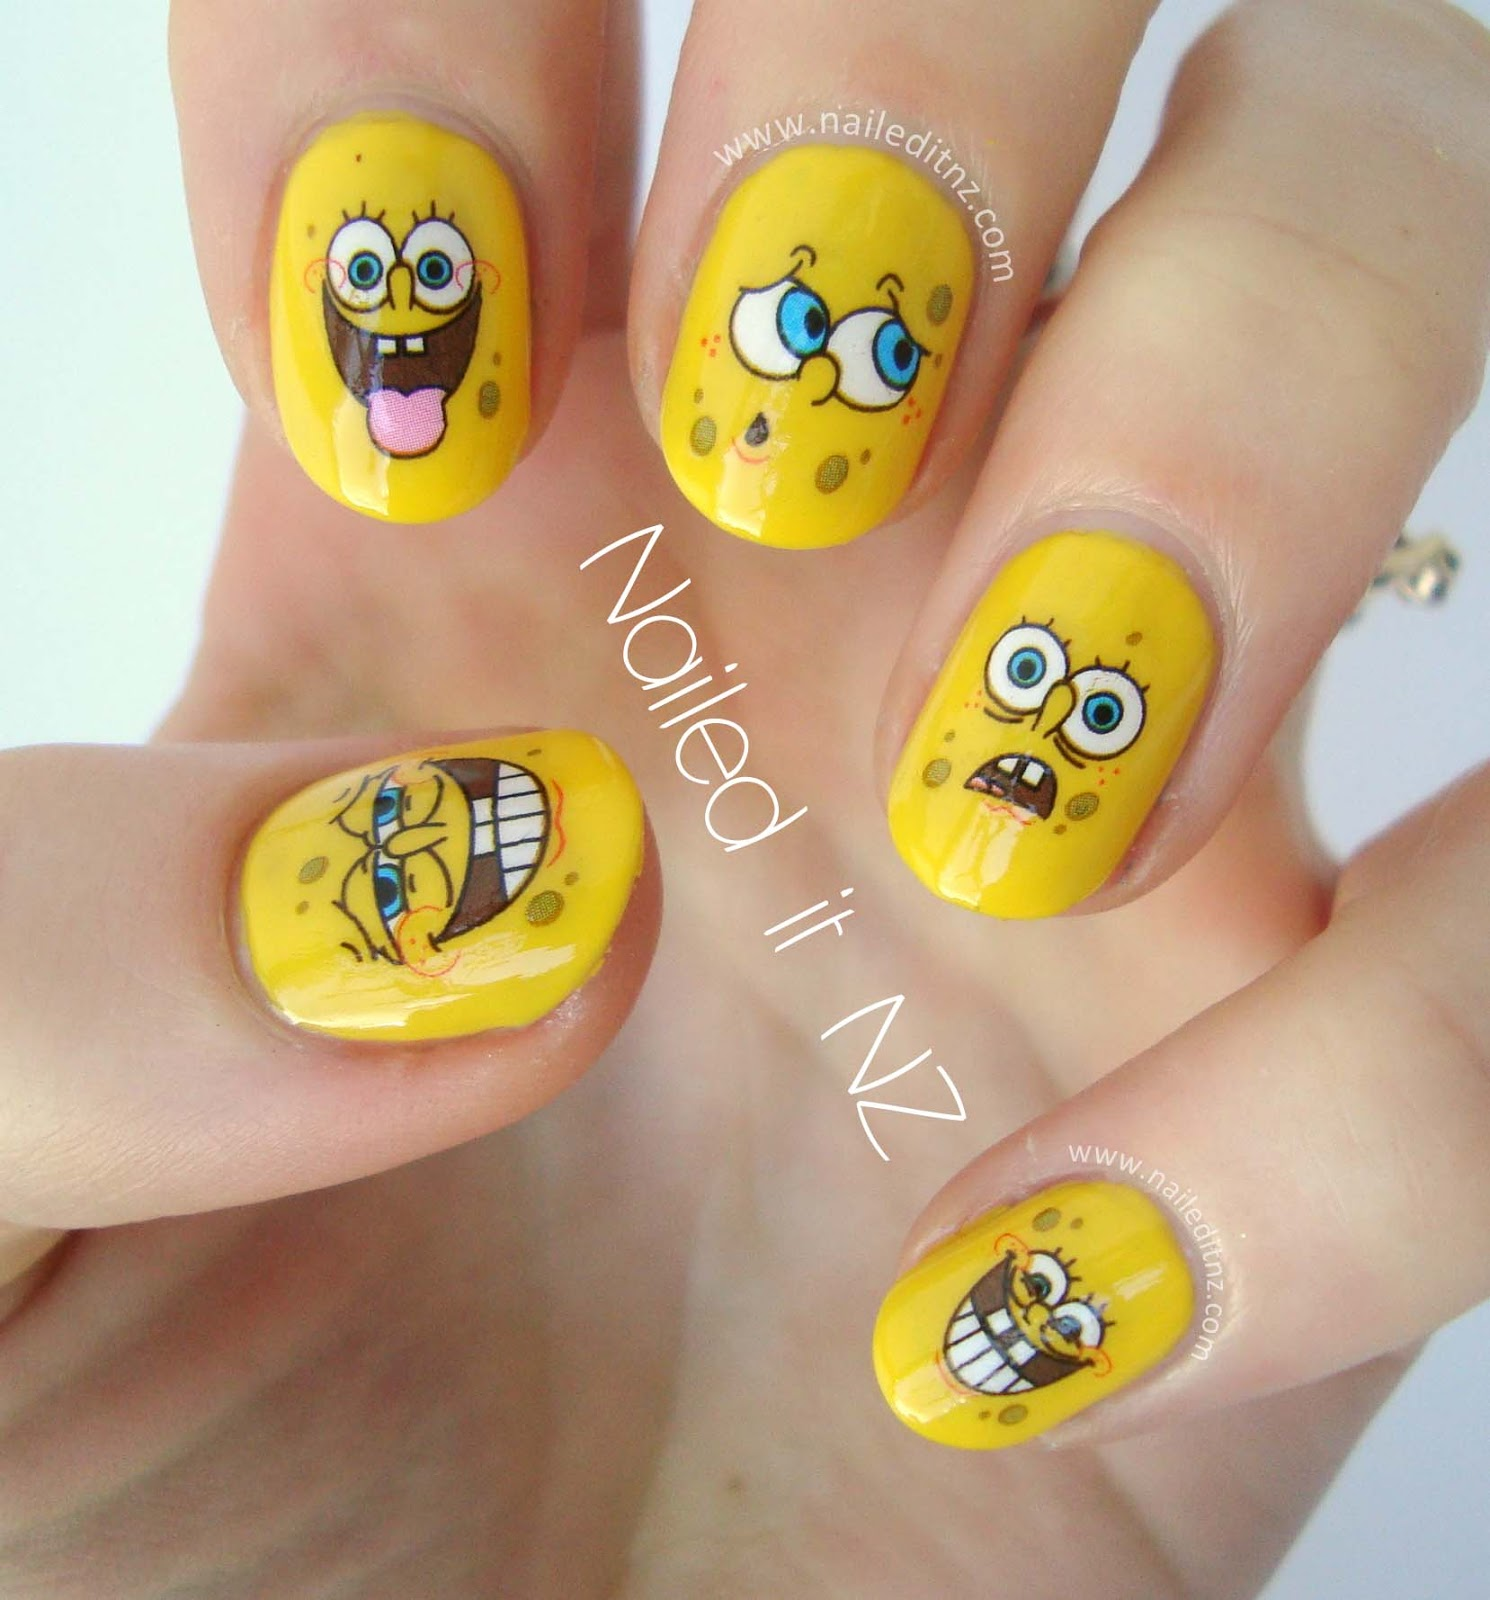 Spongebob squarepants nails spongebob nails i love how they look theyre so instantly recognisable and perfect best of all is that anyone can do them provided you have a yellow prinsesfo Image collections